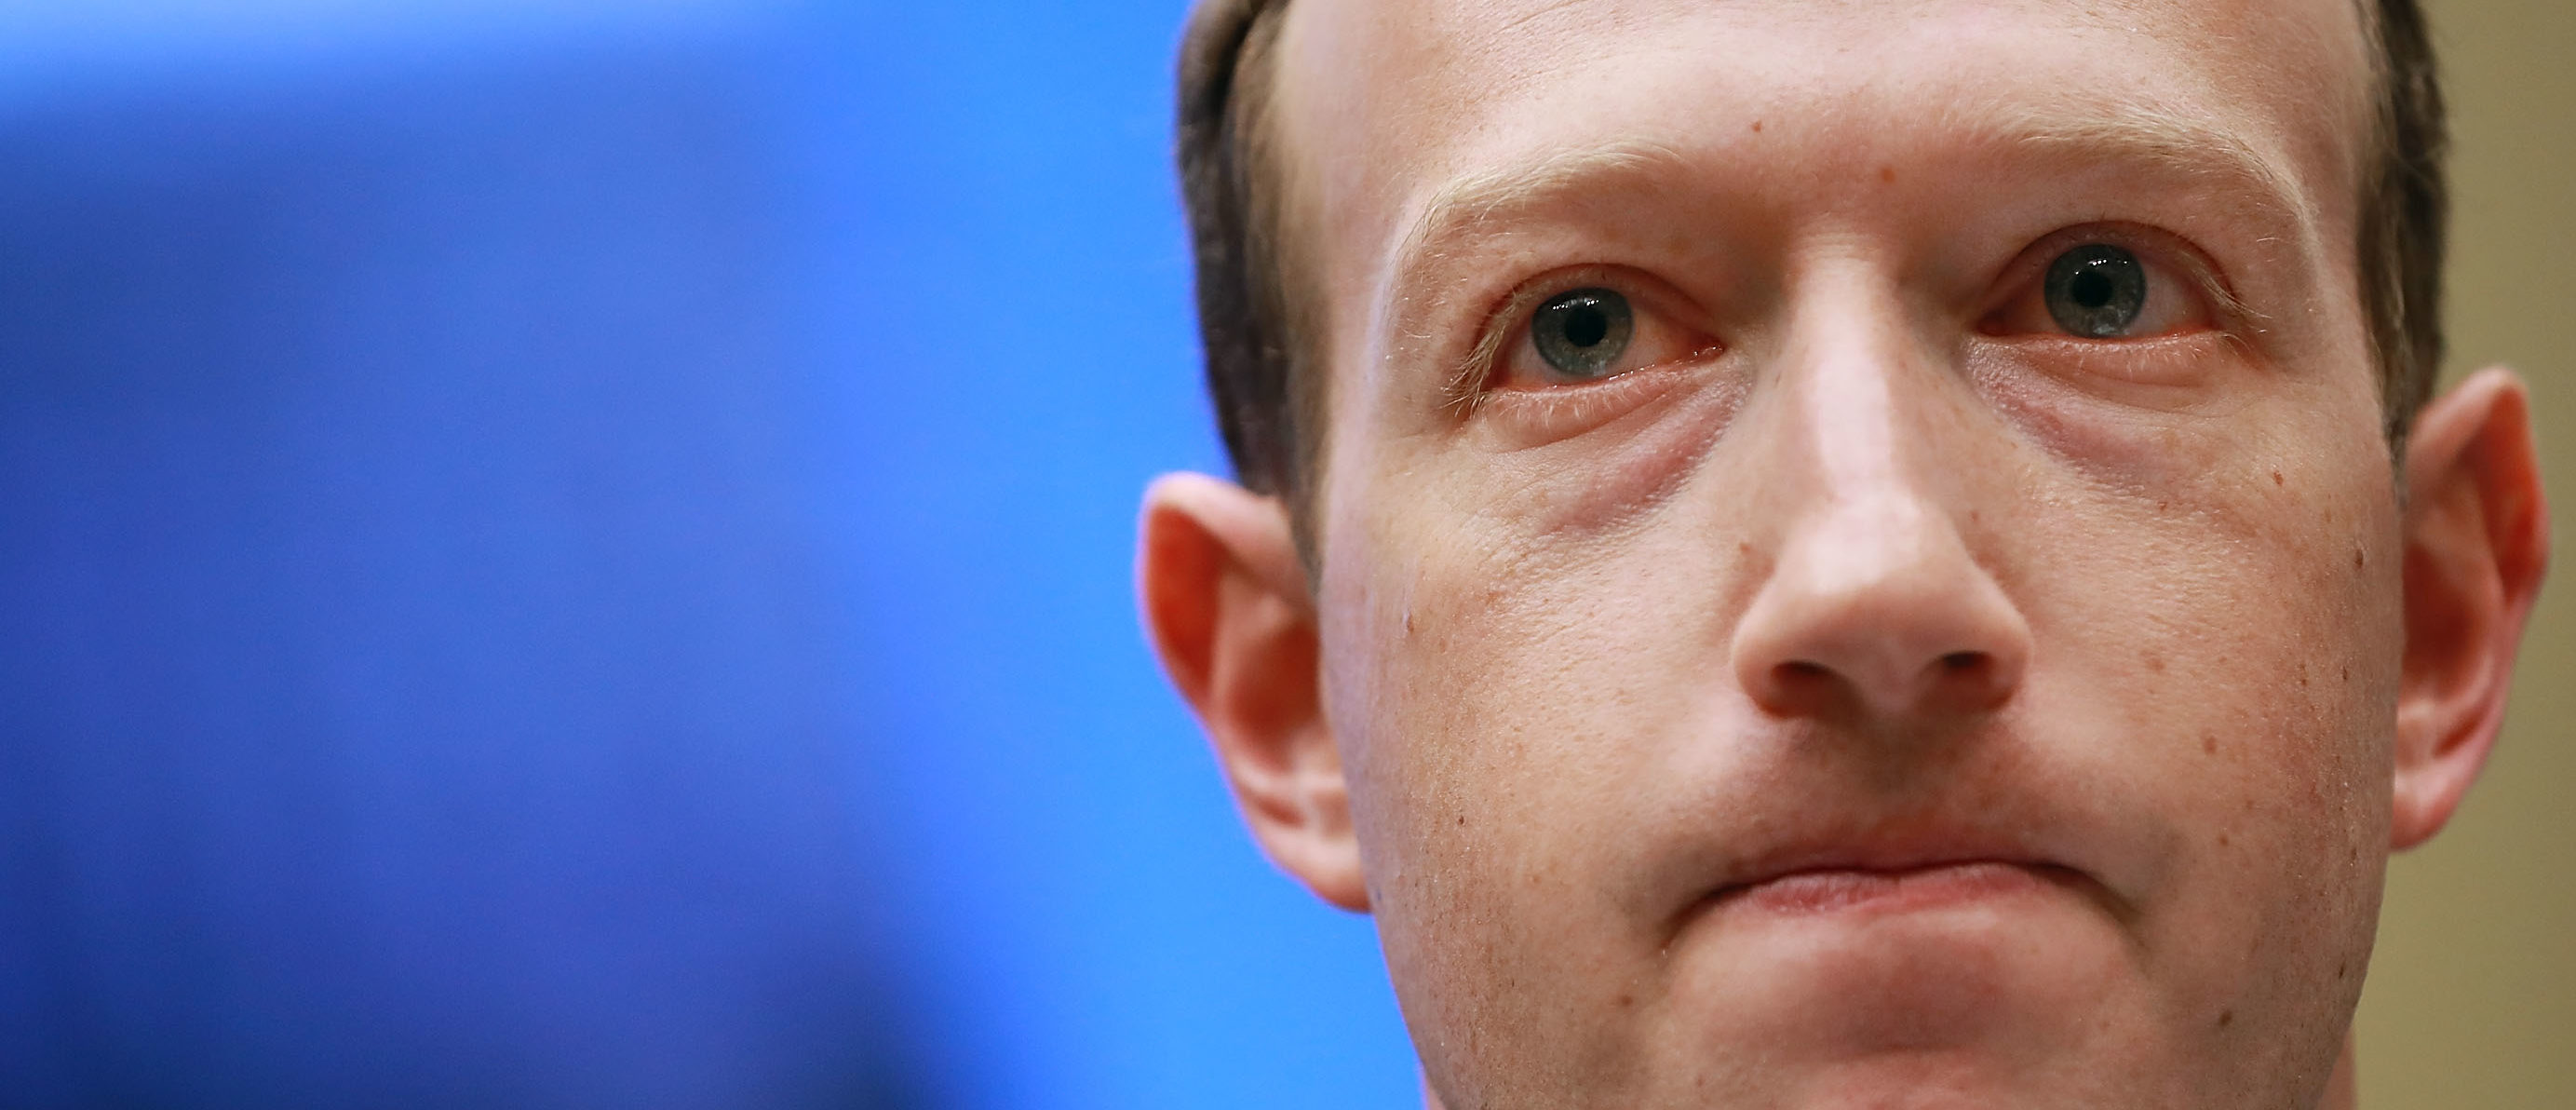 WASHINGTON, DC - APRIL 11: Facebook co-founder, Chairman and CEO Mark Zuckerberg testifies before the House Energy and Commerce Committee in the Rayburn House Office Building on Capitol Hill April 11, 2018 in Washington, DC. This is the second day of testimony before Congress by Zuckerberg, 33, after it was reported that 87 million Facebook users had their personal information harvested by Cambridge Analytica, a British political consulting firm linked to the Trump campaign. (Photo by Chip Somodevilla/Getty Images)